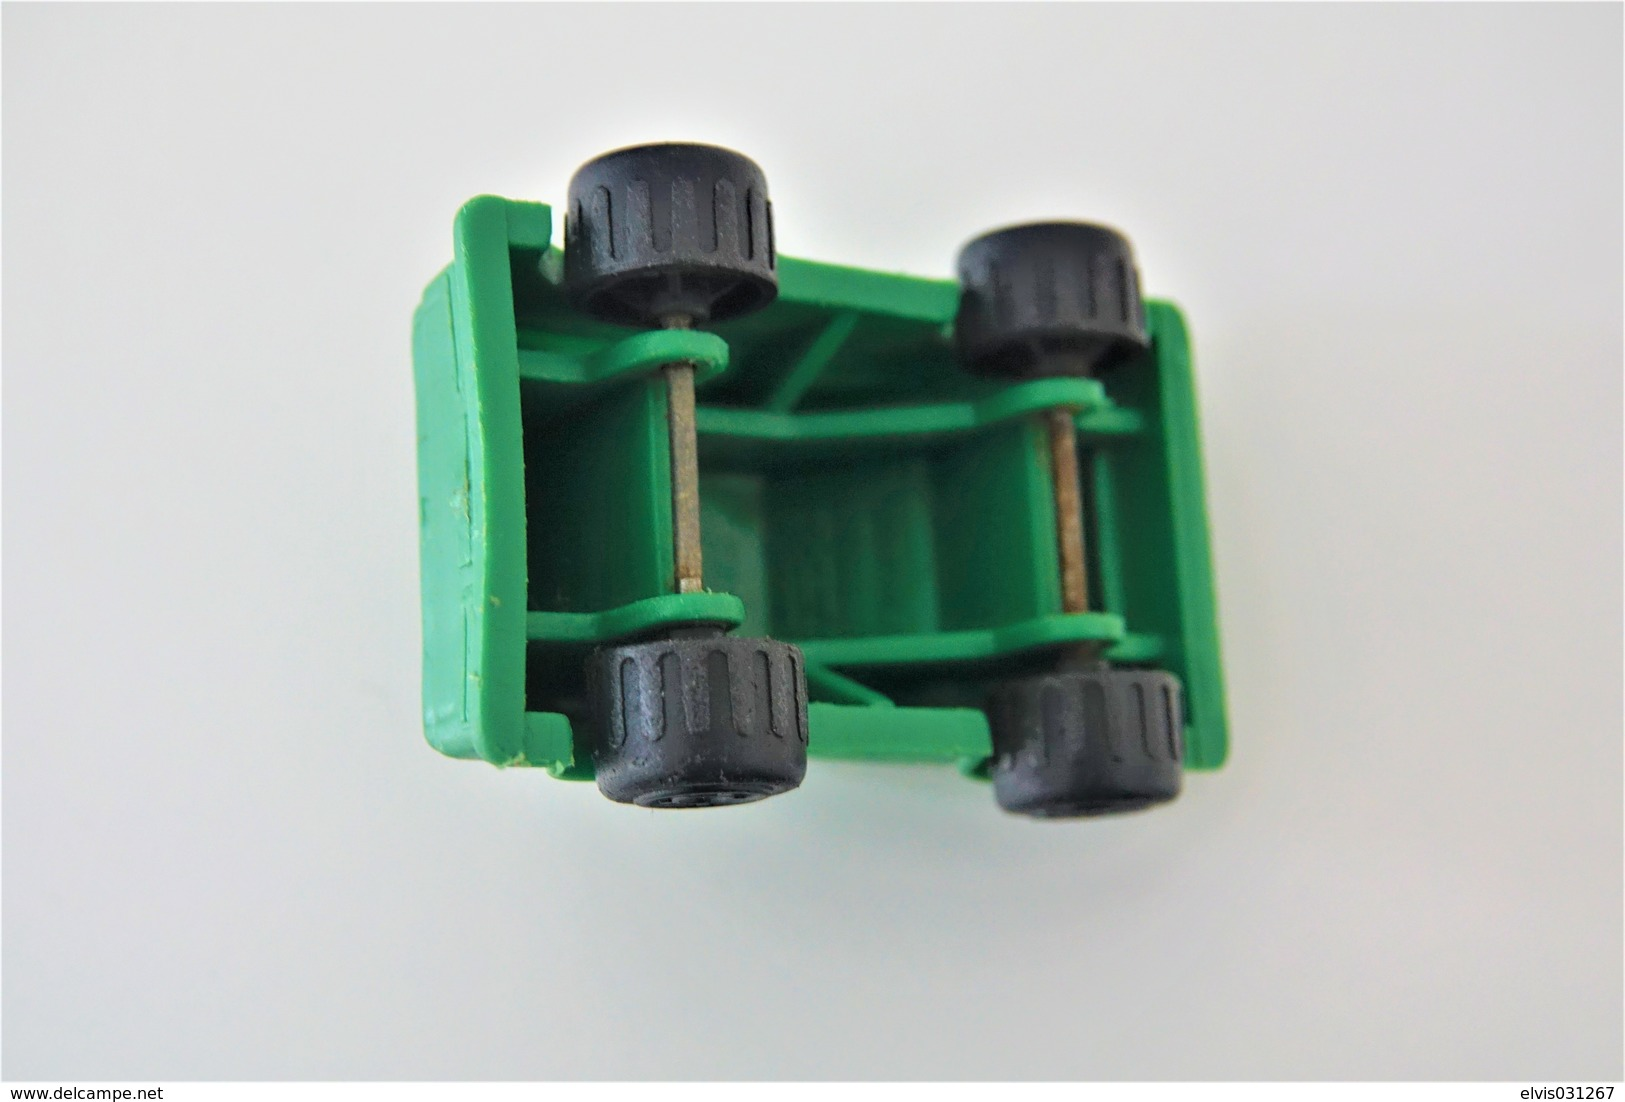 Vintage VINYL TOY CAR : Maker PLASTO Made In Finland - Green Car  7.00cm - 19XX's - Rubber - Other